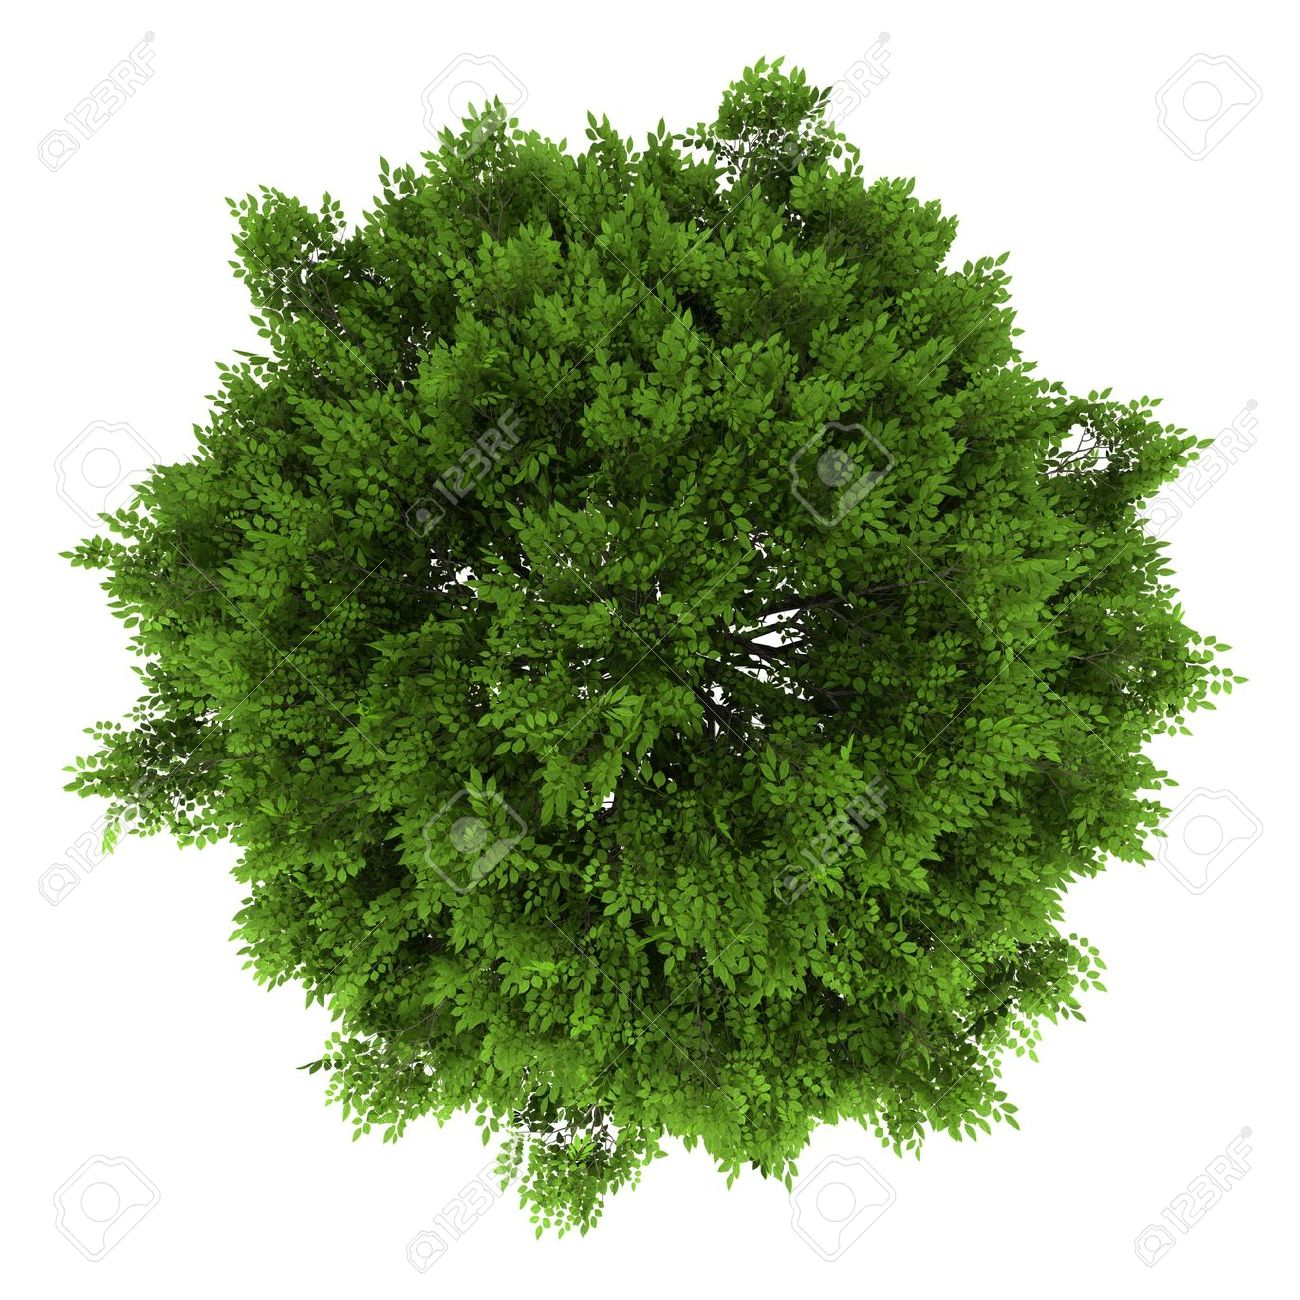 Top View Of European Ash Tree Isolated On White Background Stock Photo